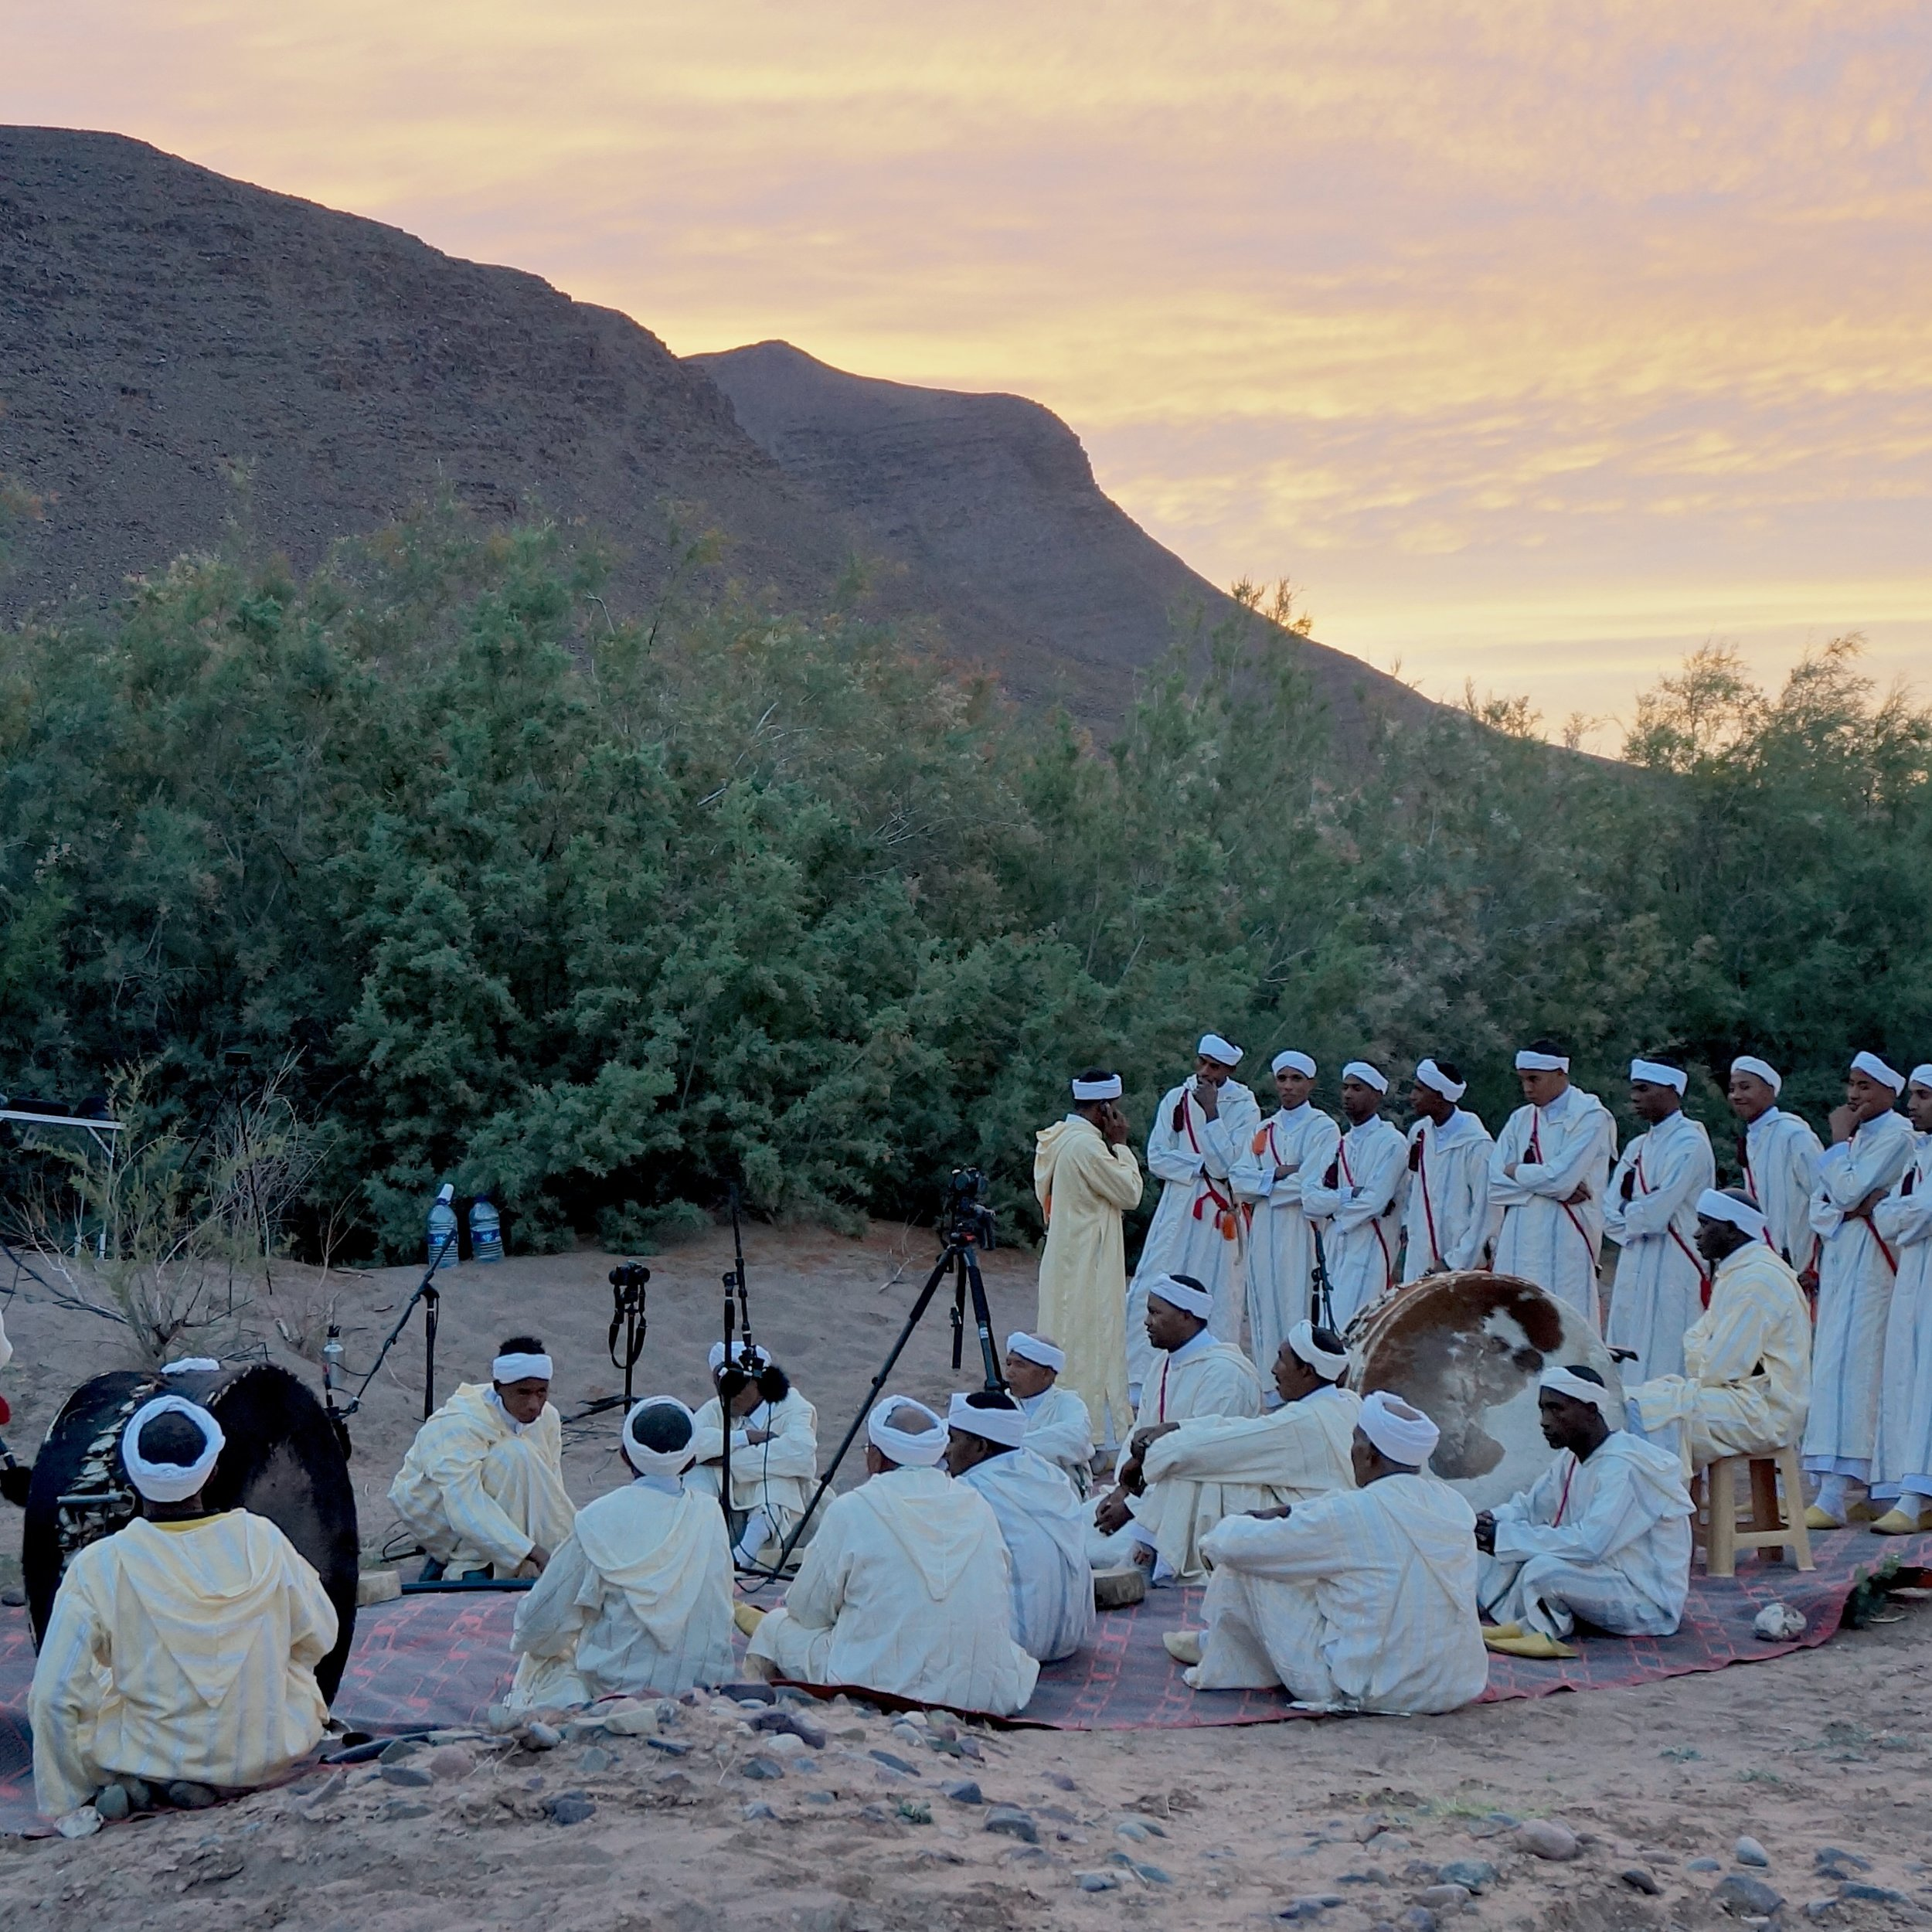 Ferqa Ahwach Agdz - From a southeastern town tucked behind stunningly eroded mountains and lush oases, hails this group, carrying the torch of the most complex of all Amazigh traditions.